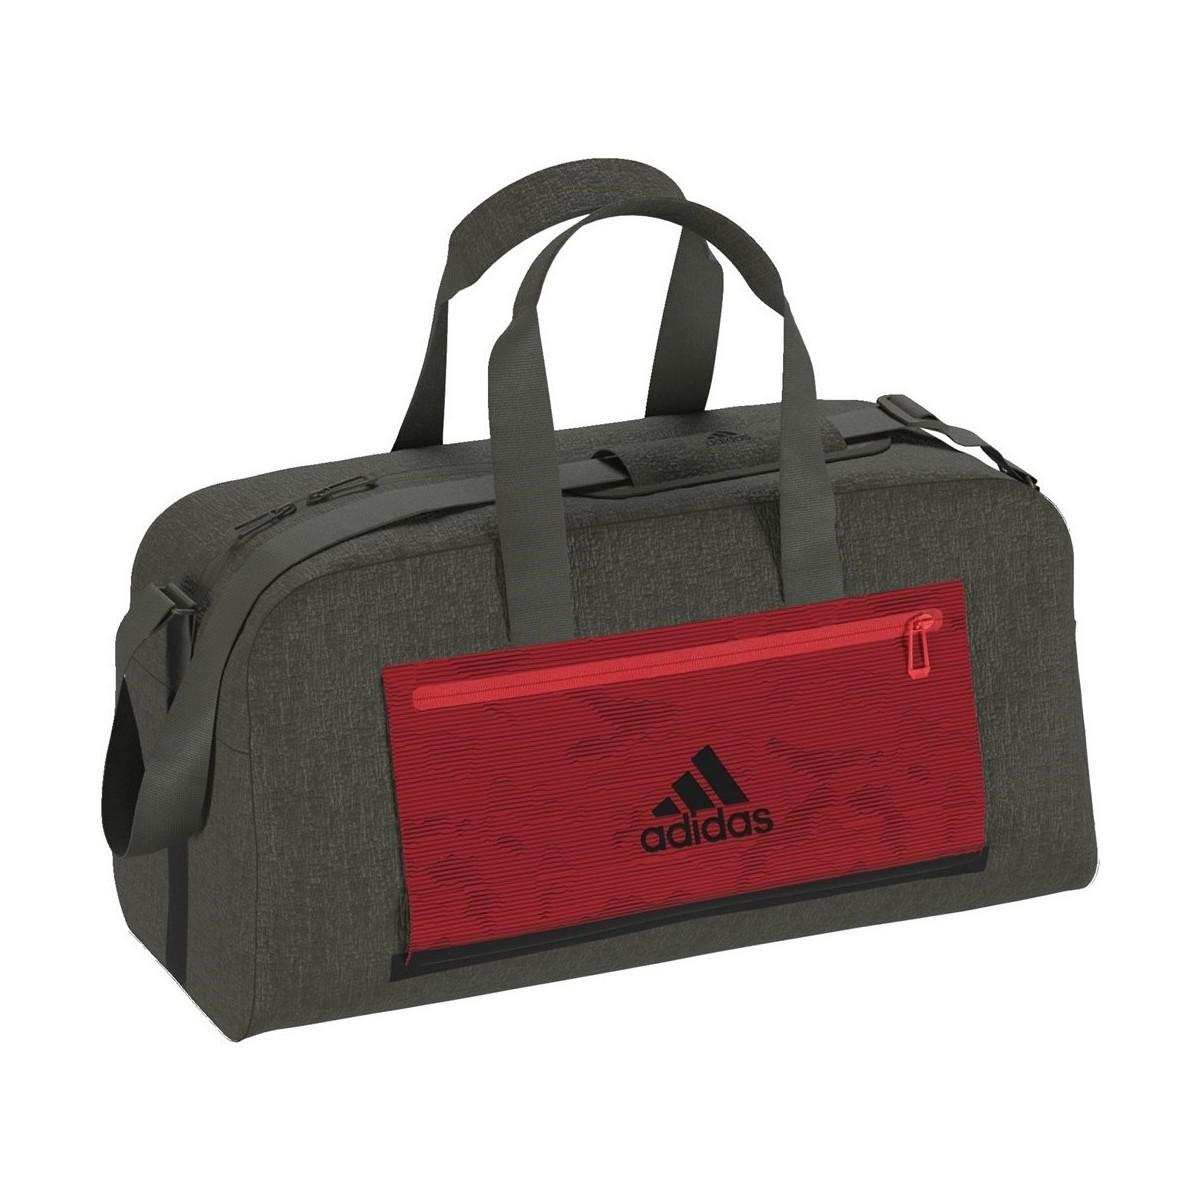 b9d69ab5af4 adidas Fi Team Bag 172 Men s Sports Bag In Black in Black for Men - Lyst